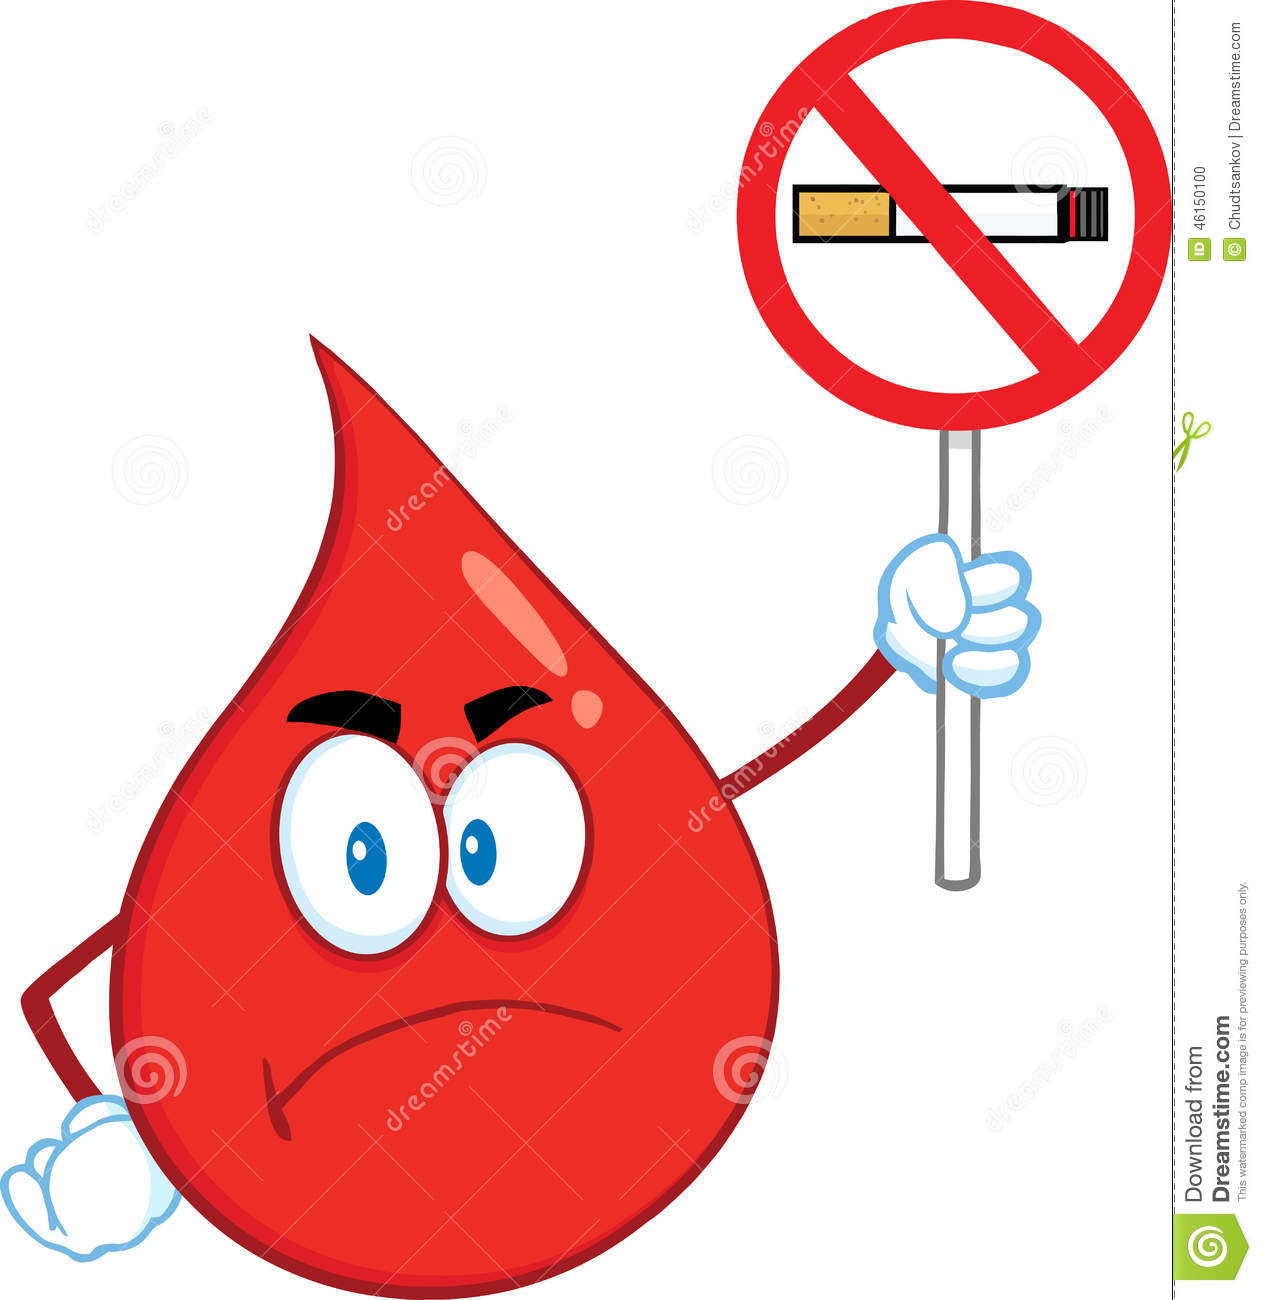 Angry Red Blood Drop Cartoon Mascot Character Holding Up A No Smoking ...